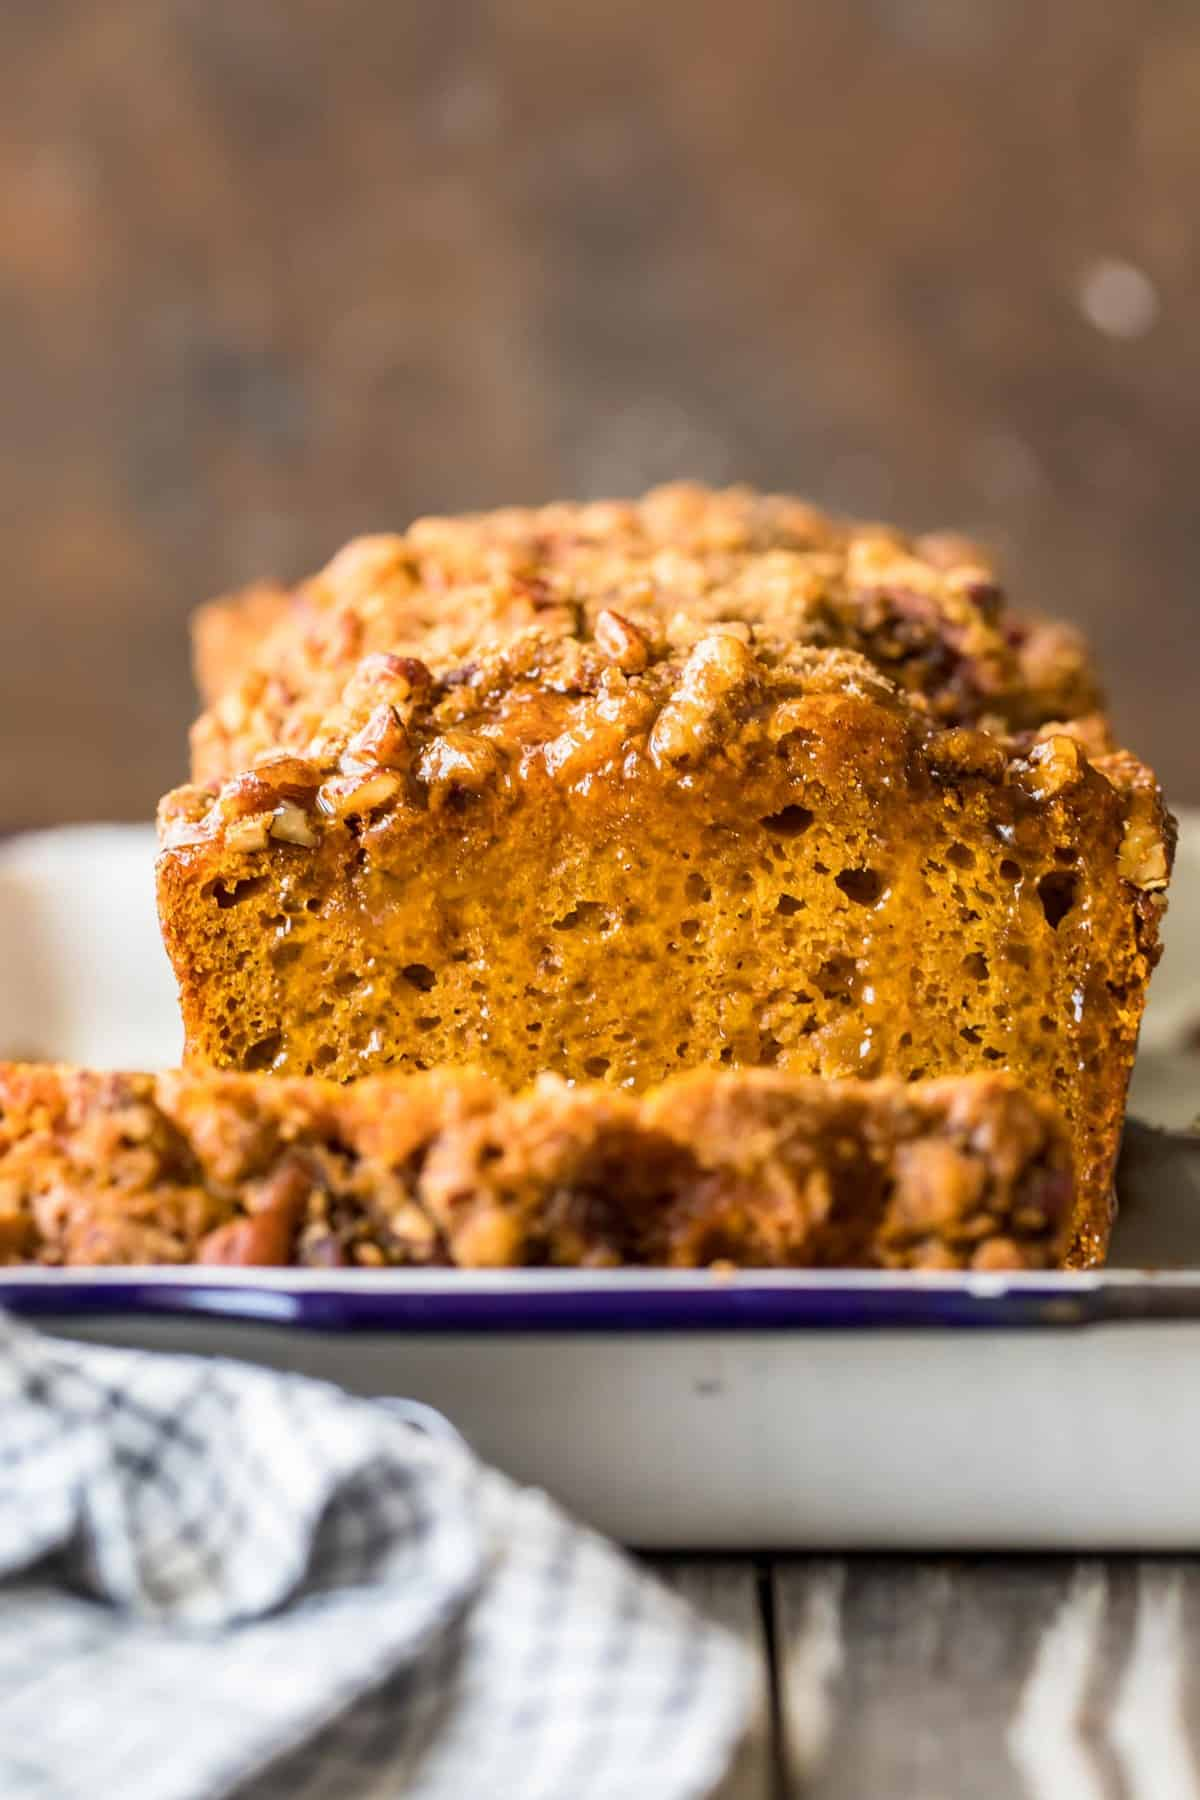 Oatmeal Pumpkin Bread with the end sliced off